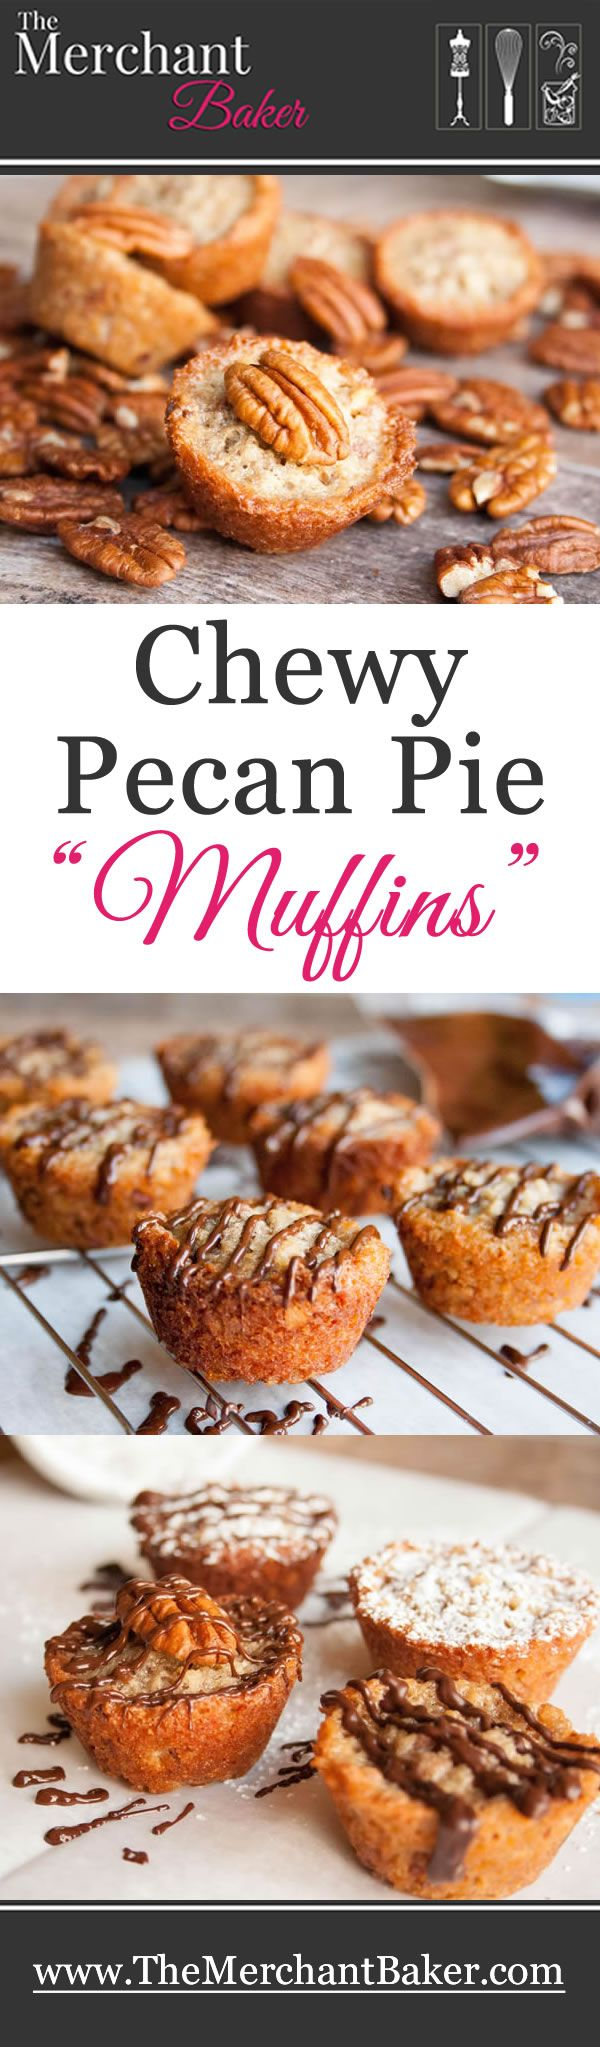 "Chewy Pecan Pie ""Muffins""-the flavor of pecan pie in a chewy little muffin cup. Mixes up quickly in one bowl with just 6 ingredients."